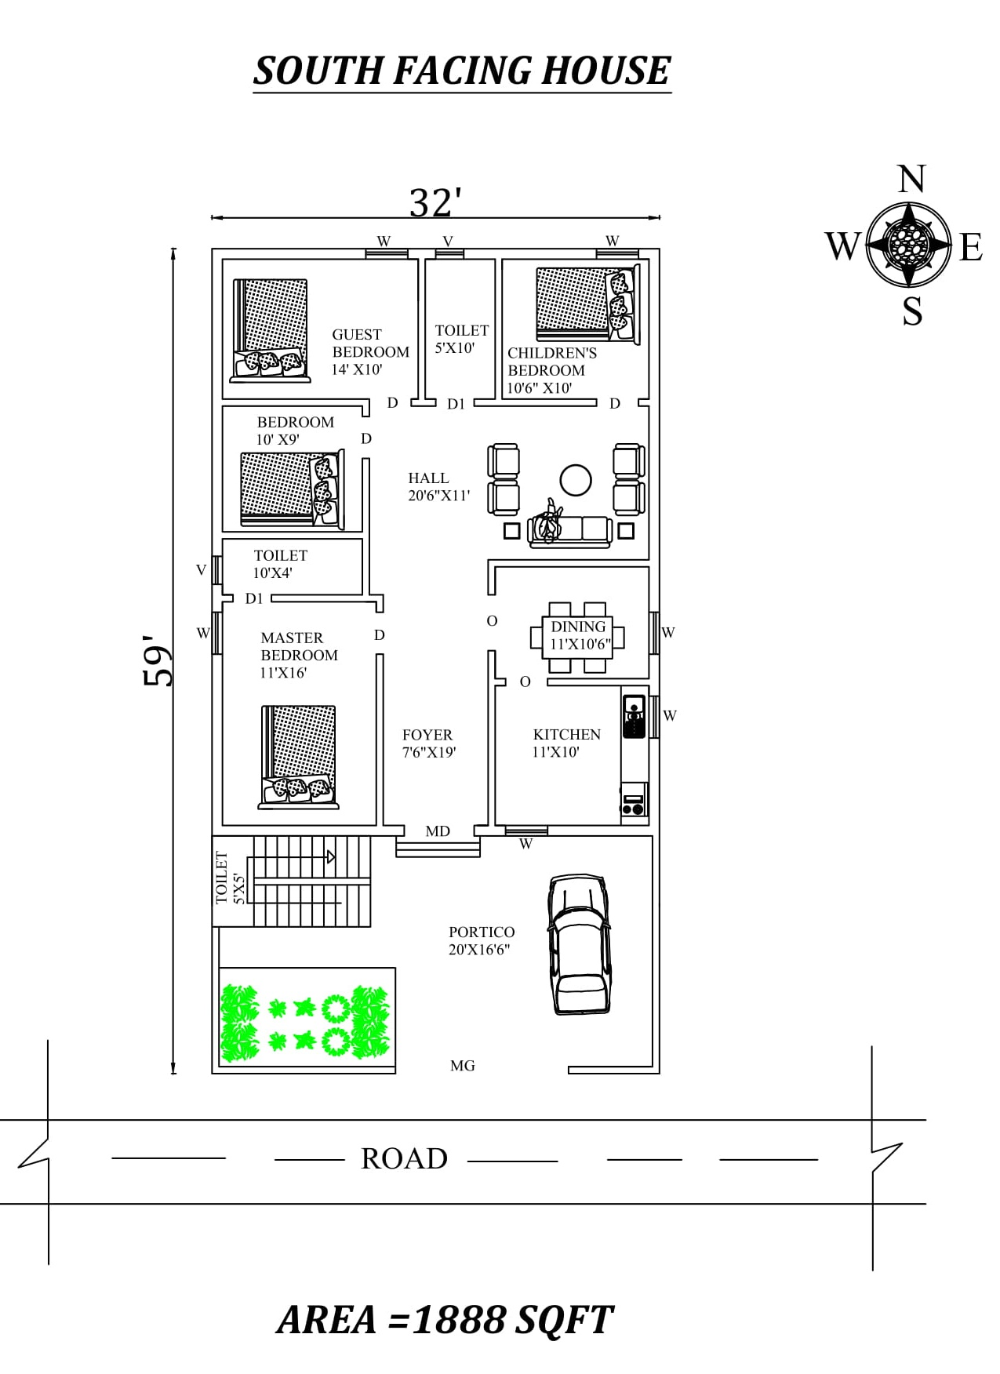 32 X59 4bhk South facing House Plan As Per Vastu Shastra Autocad DWG and Pdf file details